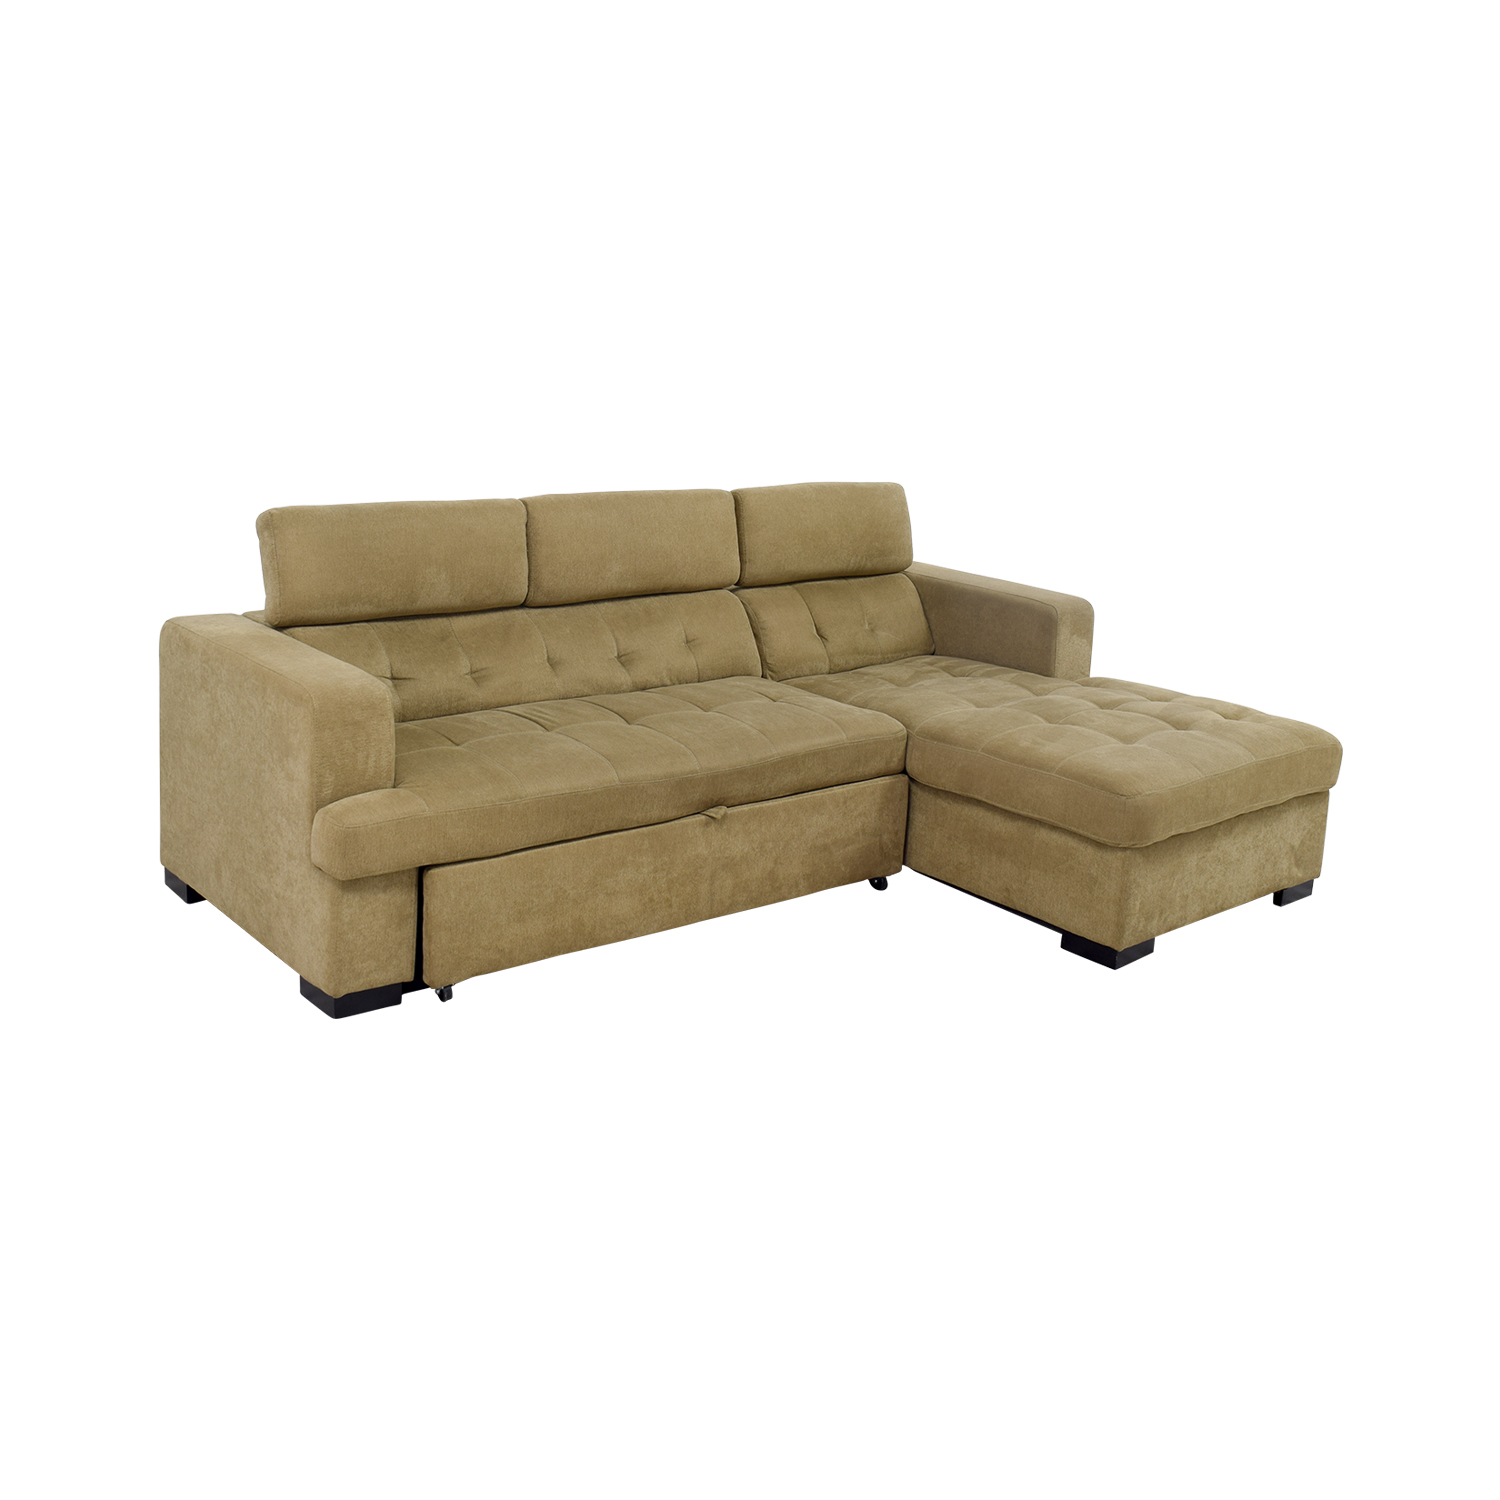 59 OFF Bobs Furniture Bobs Furniture Gold Chaise Sectional